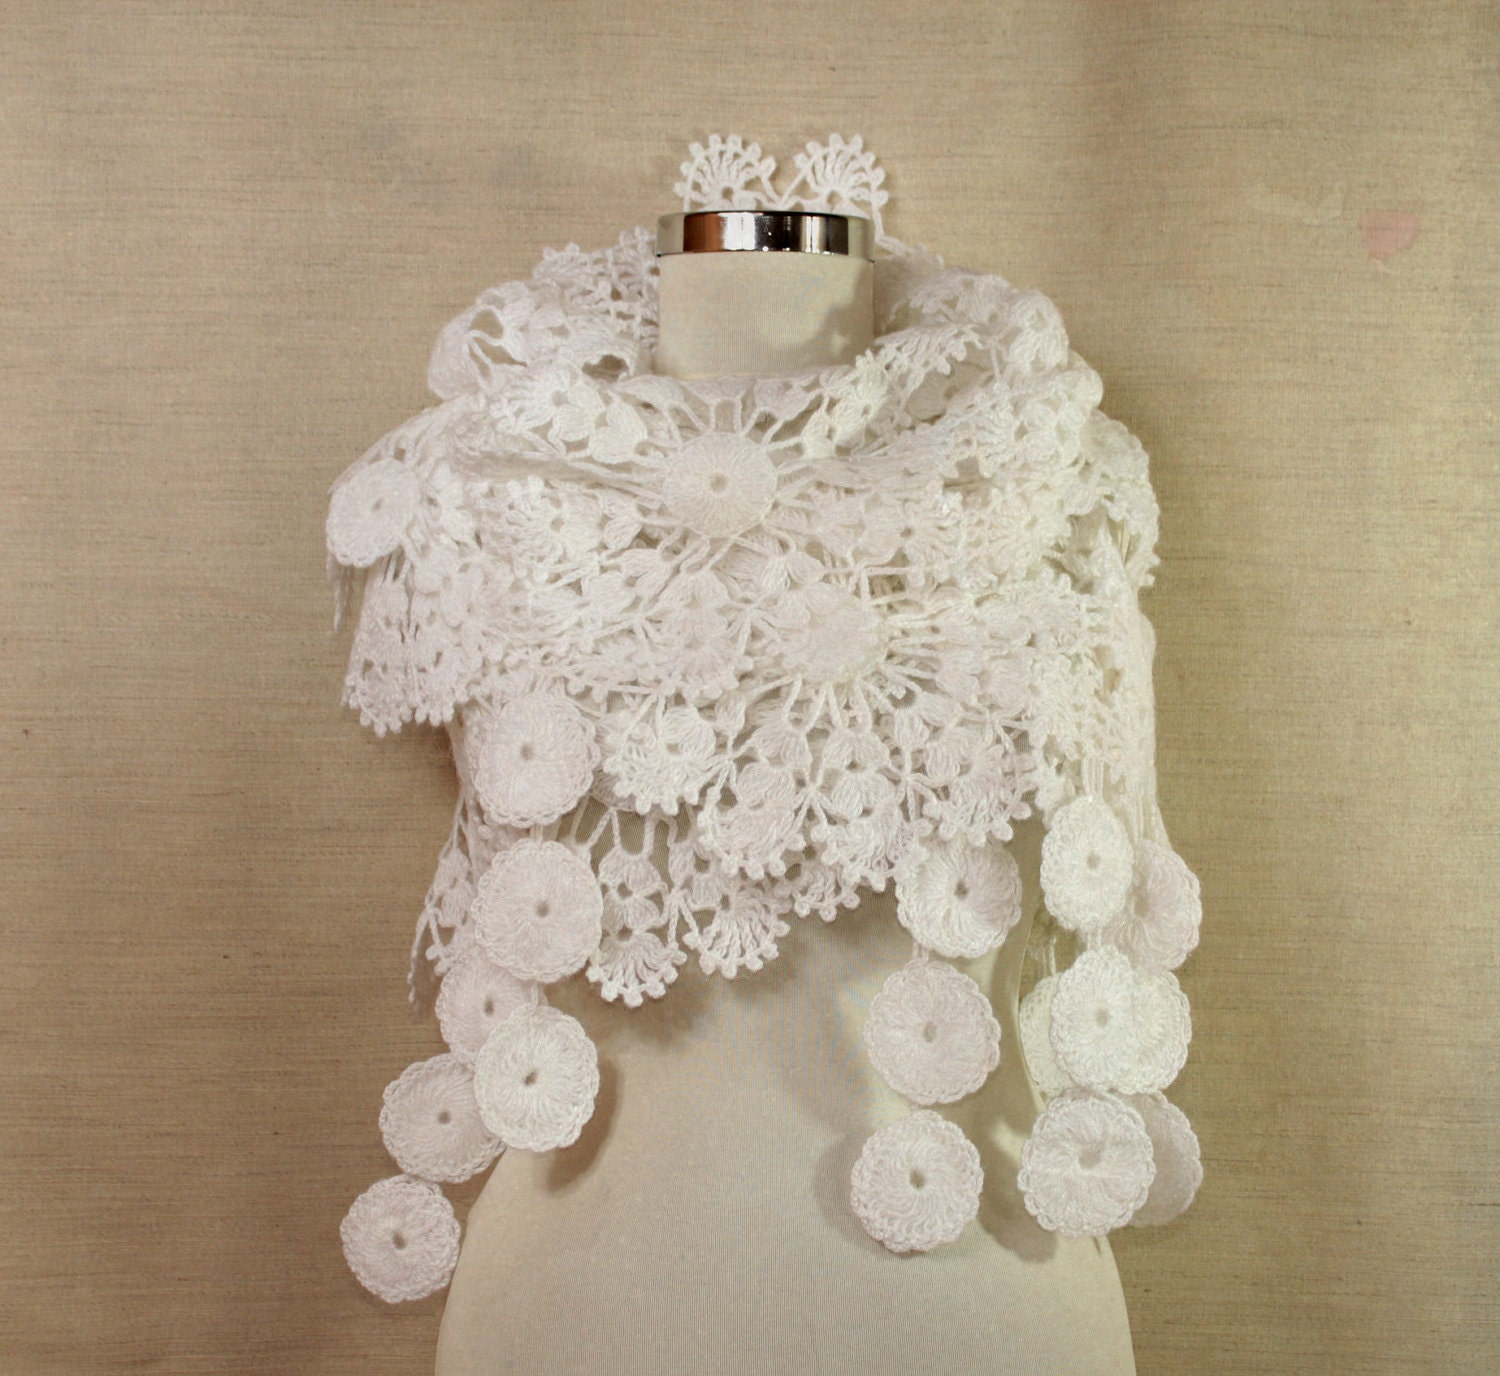 Crochet Lace Wedding Shawl Pattern : May Flowers / Crochet Lace Shawl Wrap Scarf Bridal Shawl